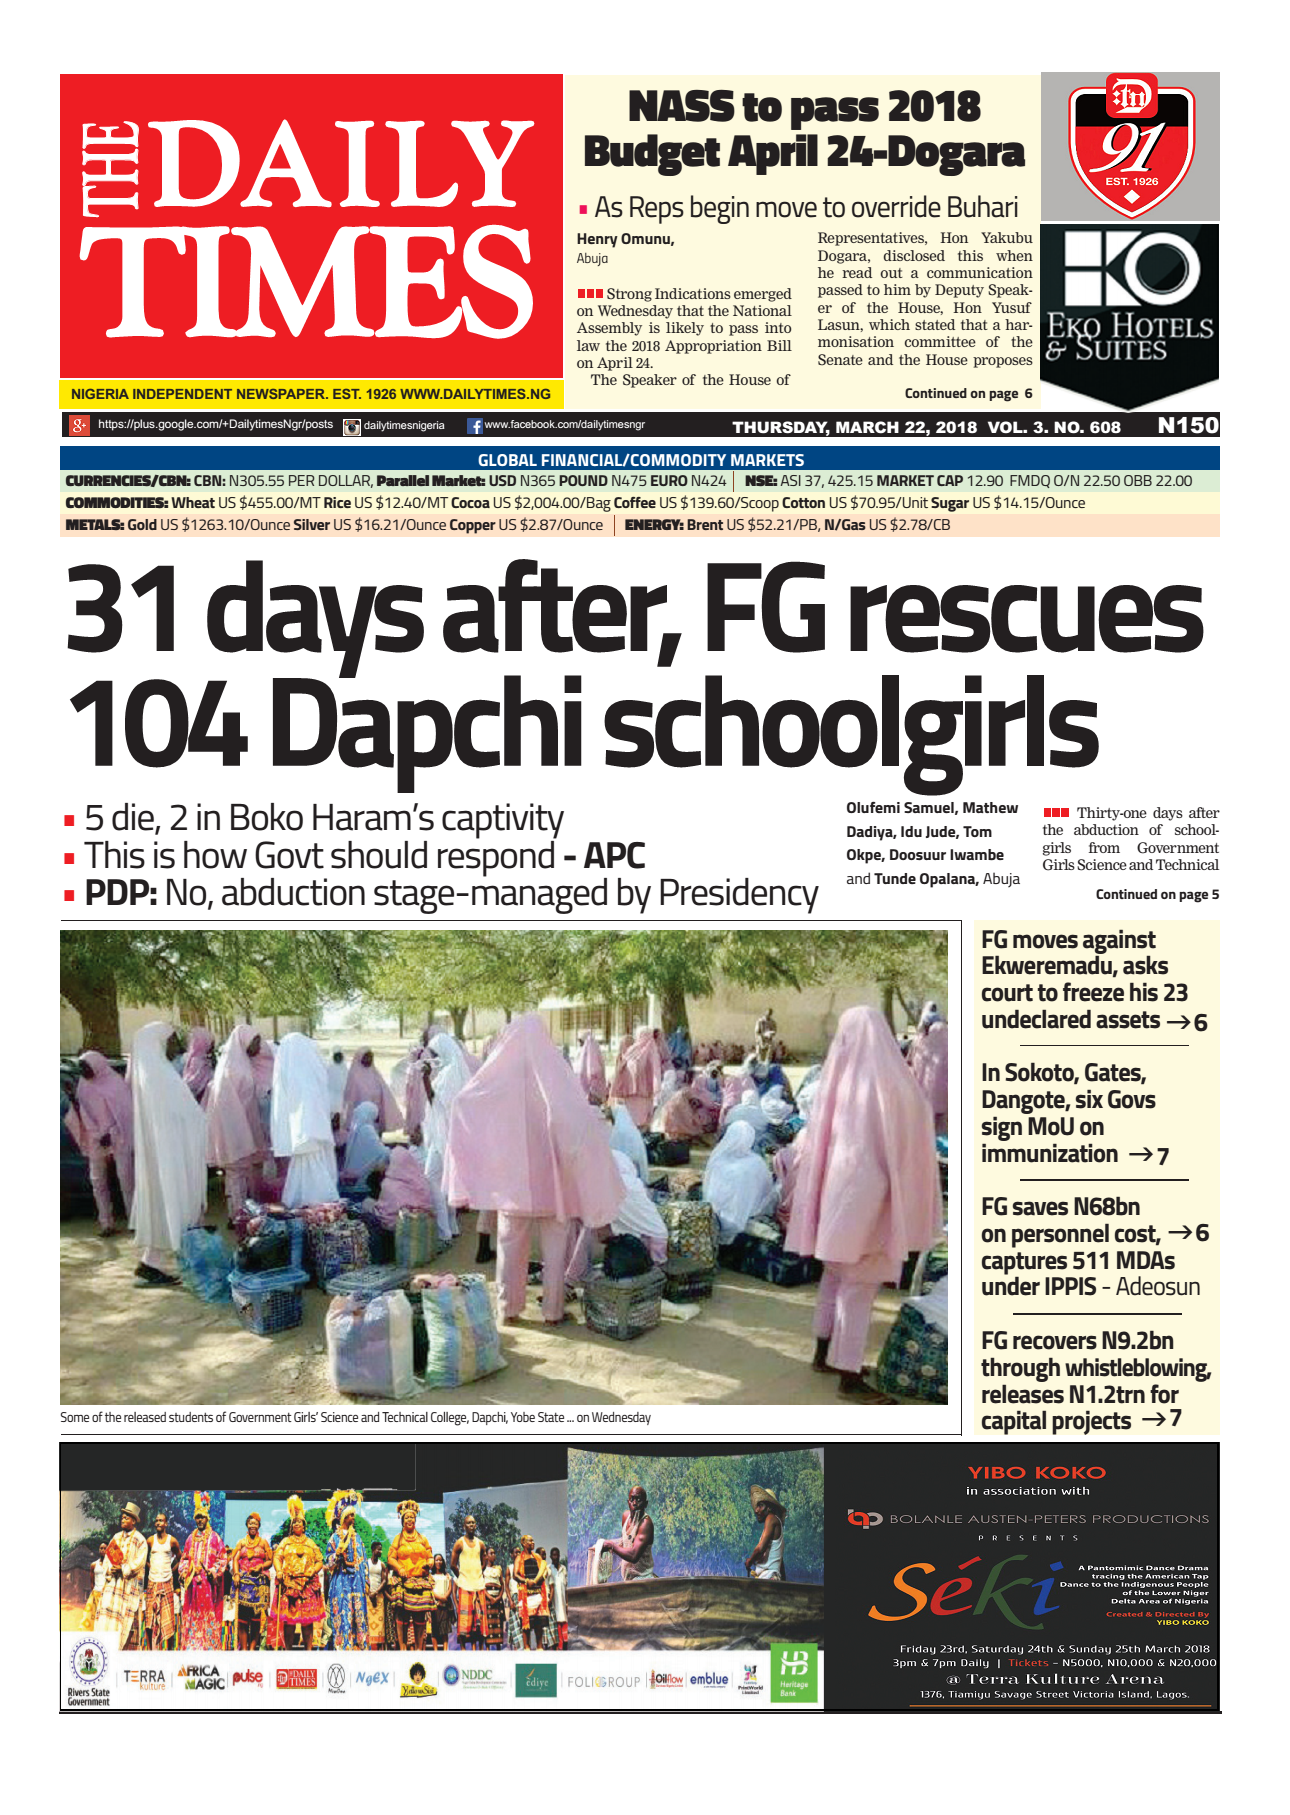 Daily Times Newspaper, Thursday, March 22, 2018